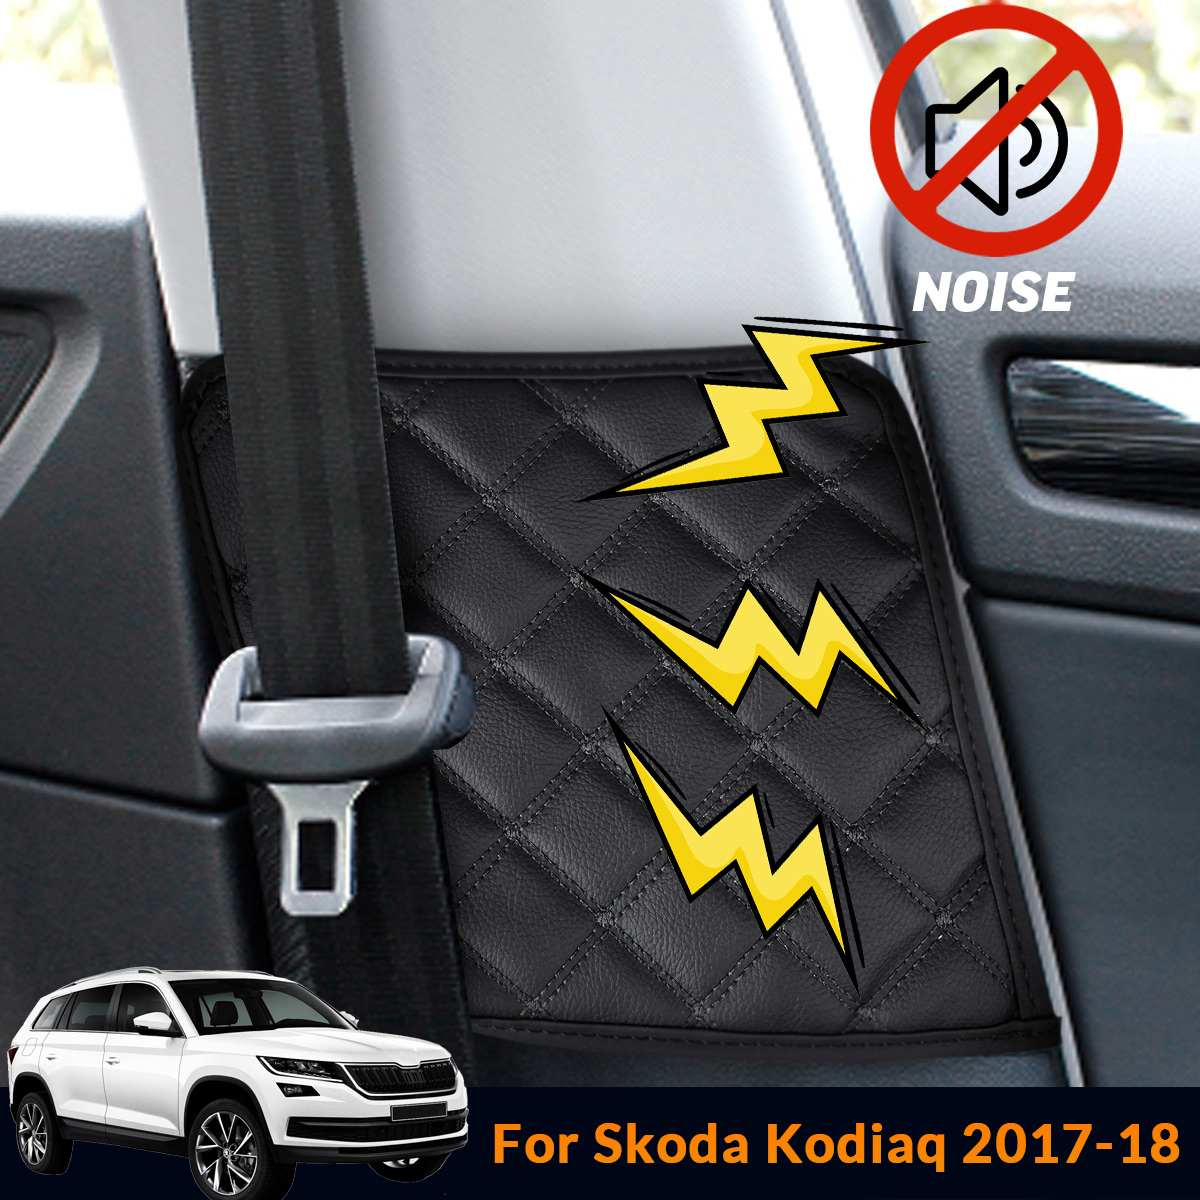 2X Car Seat Safety Belt Protective Pad Crash Mat Cover Car Styling Auto Interior Accessories For Skoda Kodiaq 2017 2018